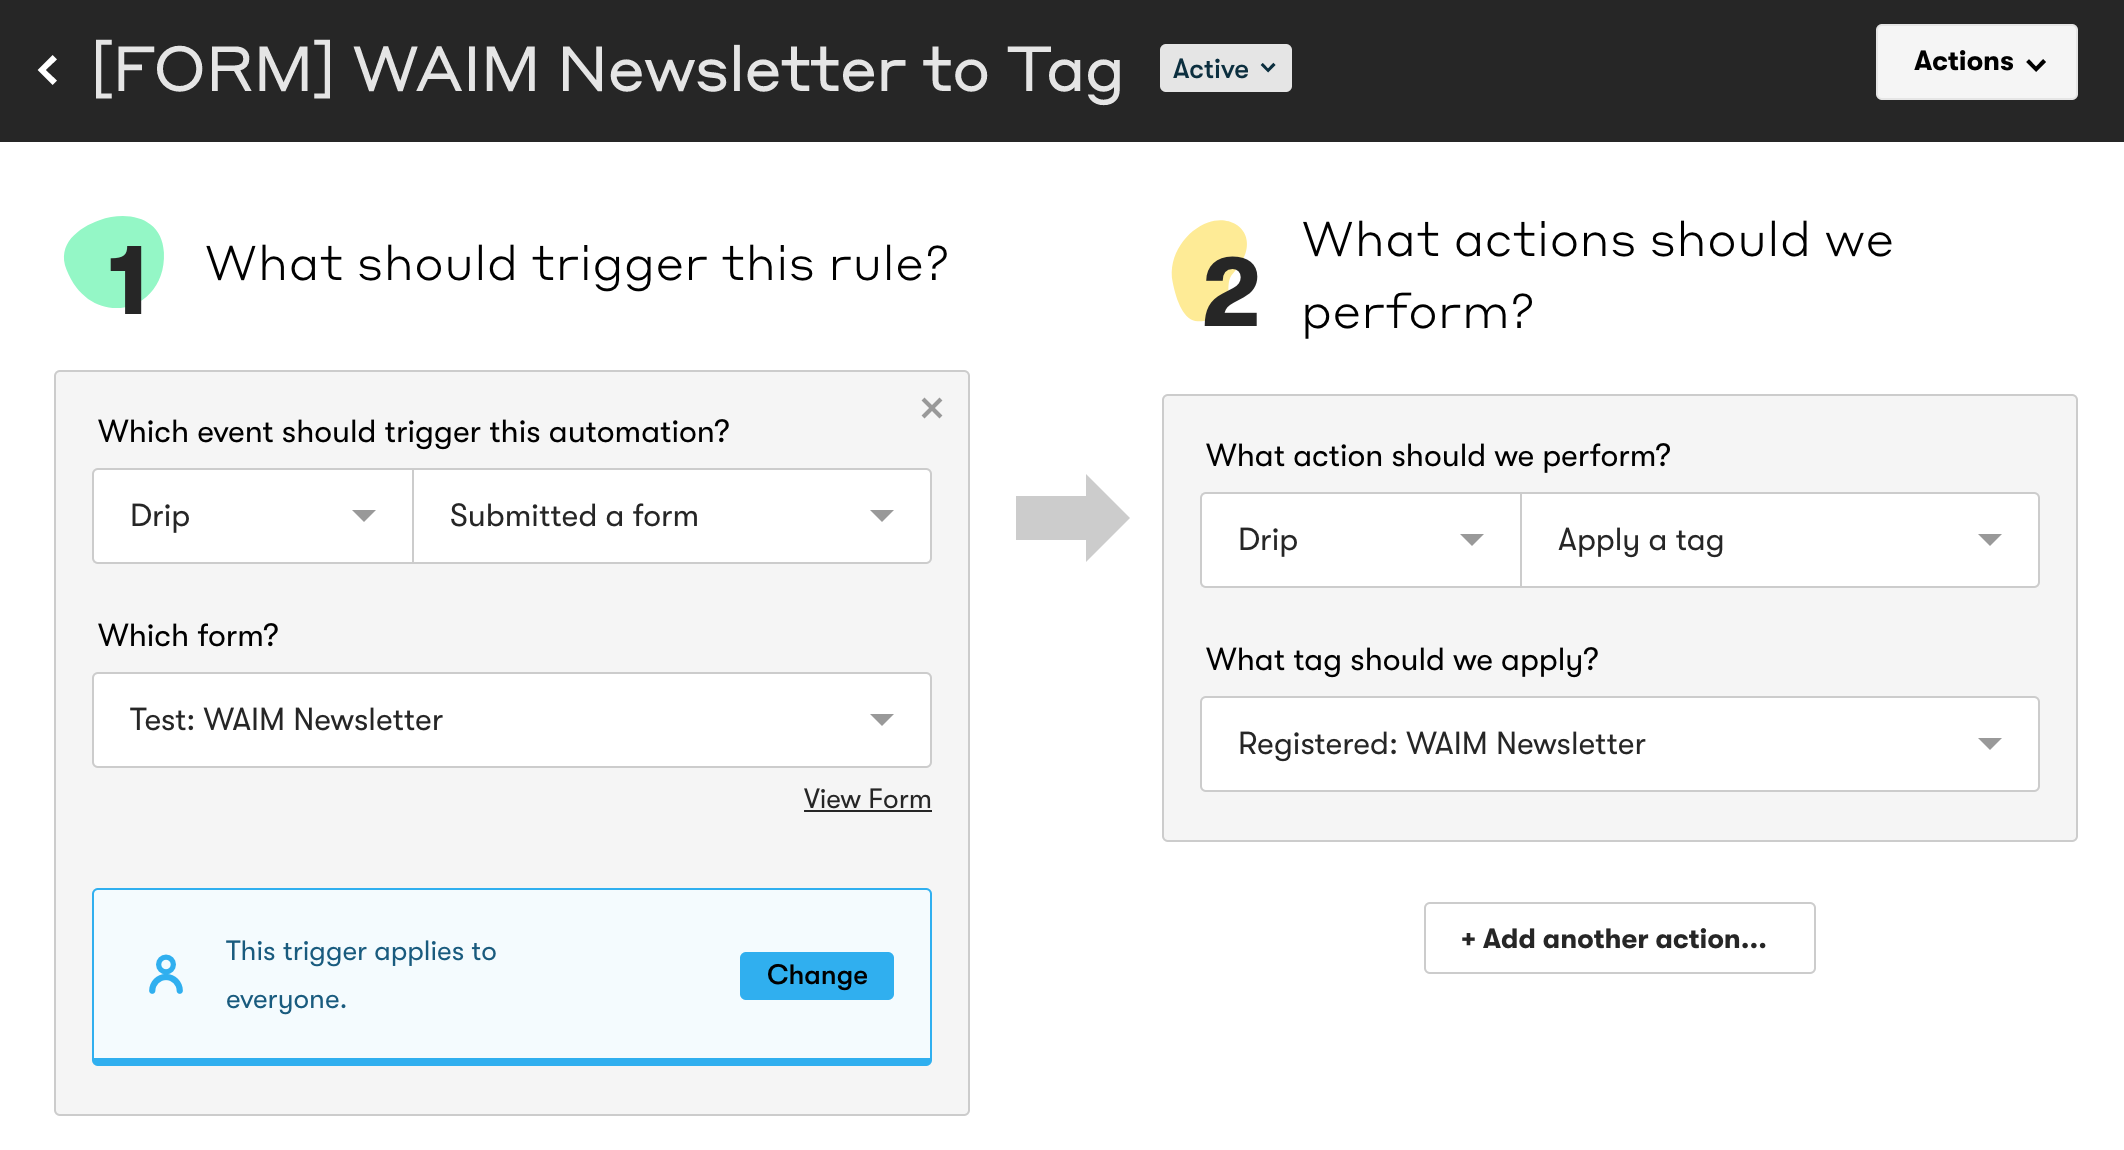 The form used in this automation rule is just a test right now but will be our real forms in the future!